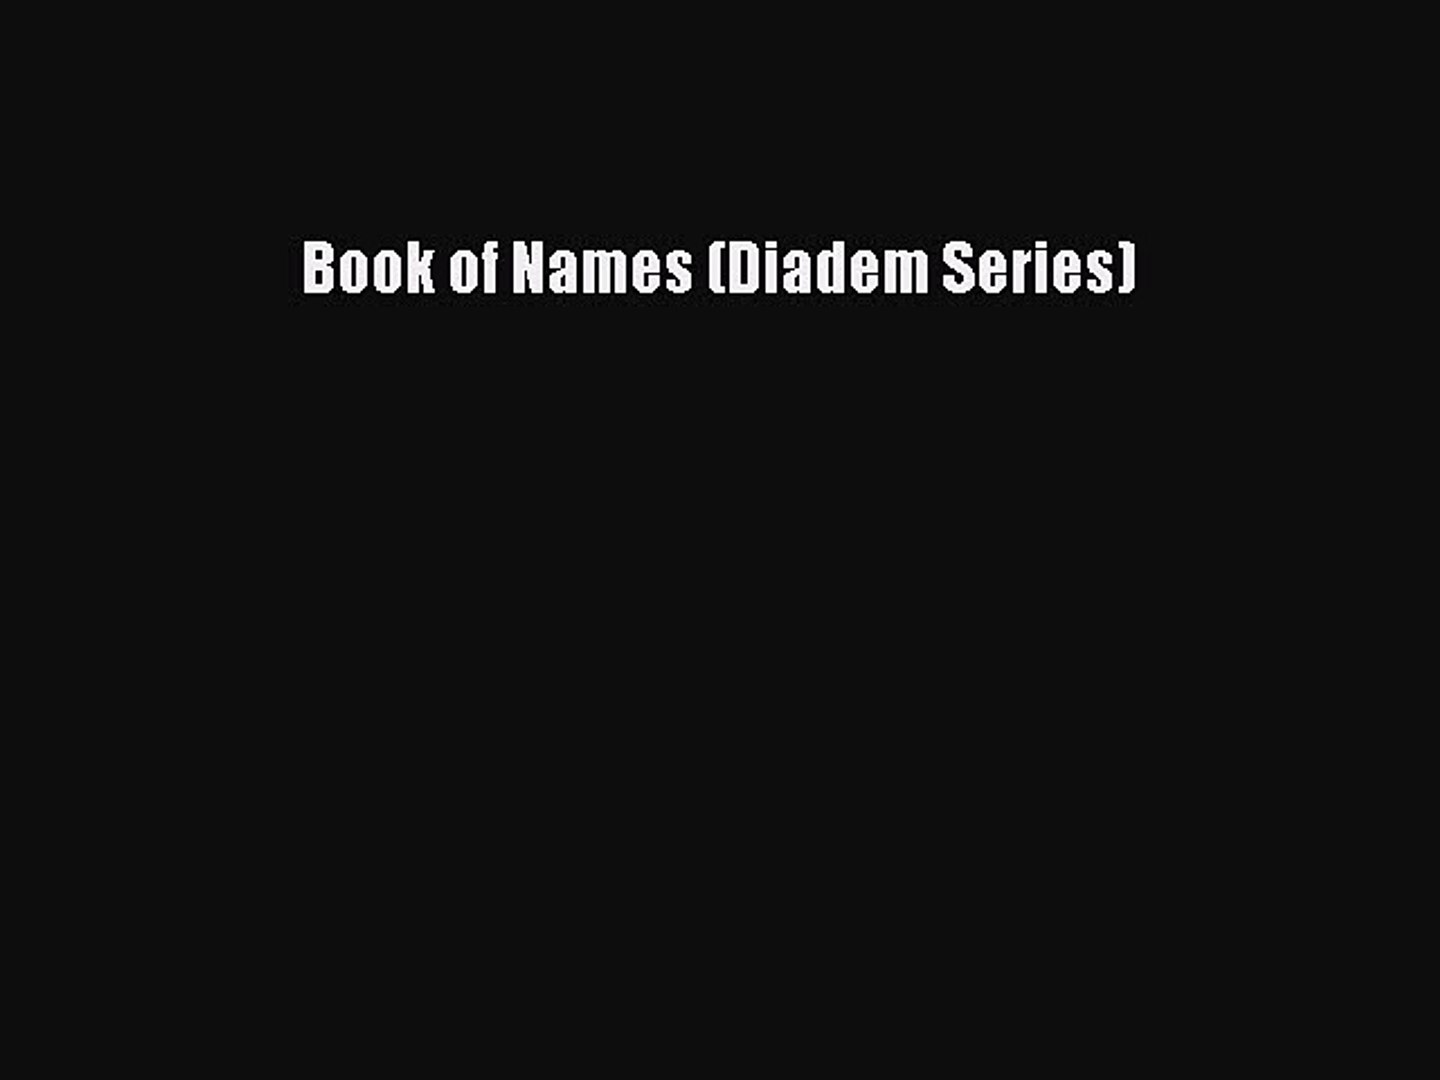 Diadem book of names pdf